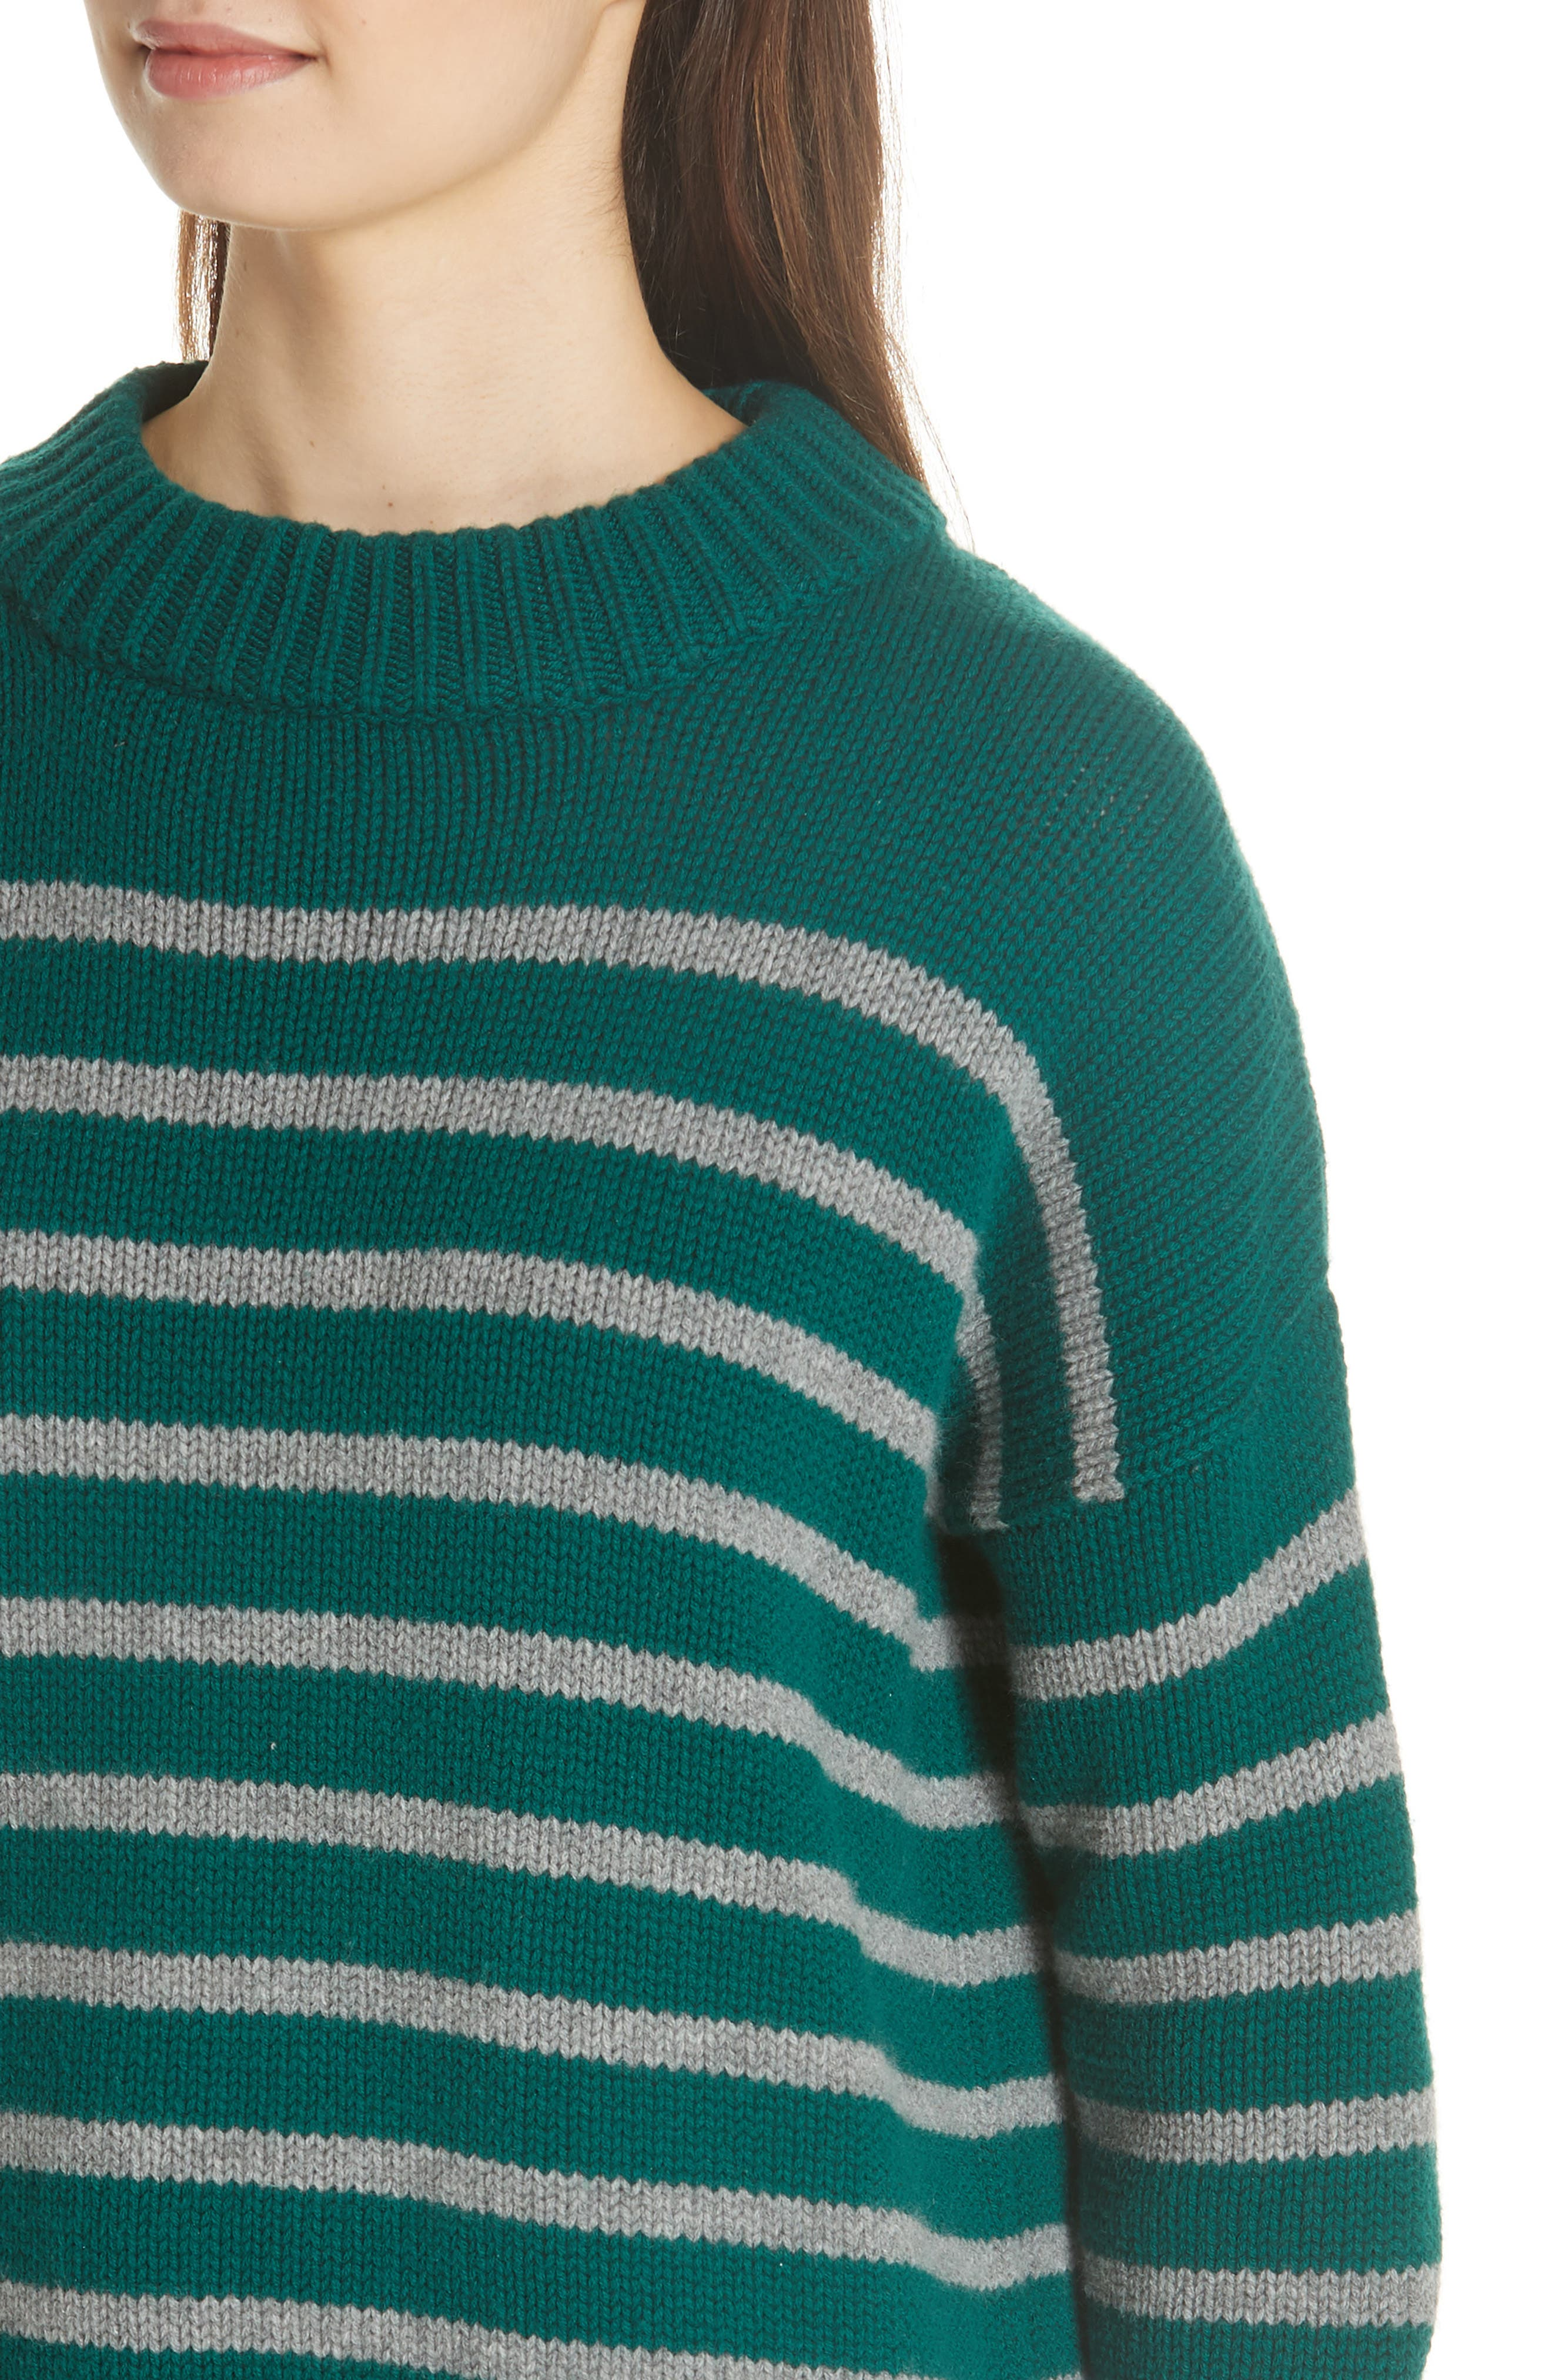 Marin Wool & Cashmere Sweater,                             Alternate thumbnail 4, color,                             FOREST GREEN/ GREY MARLE